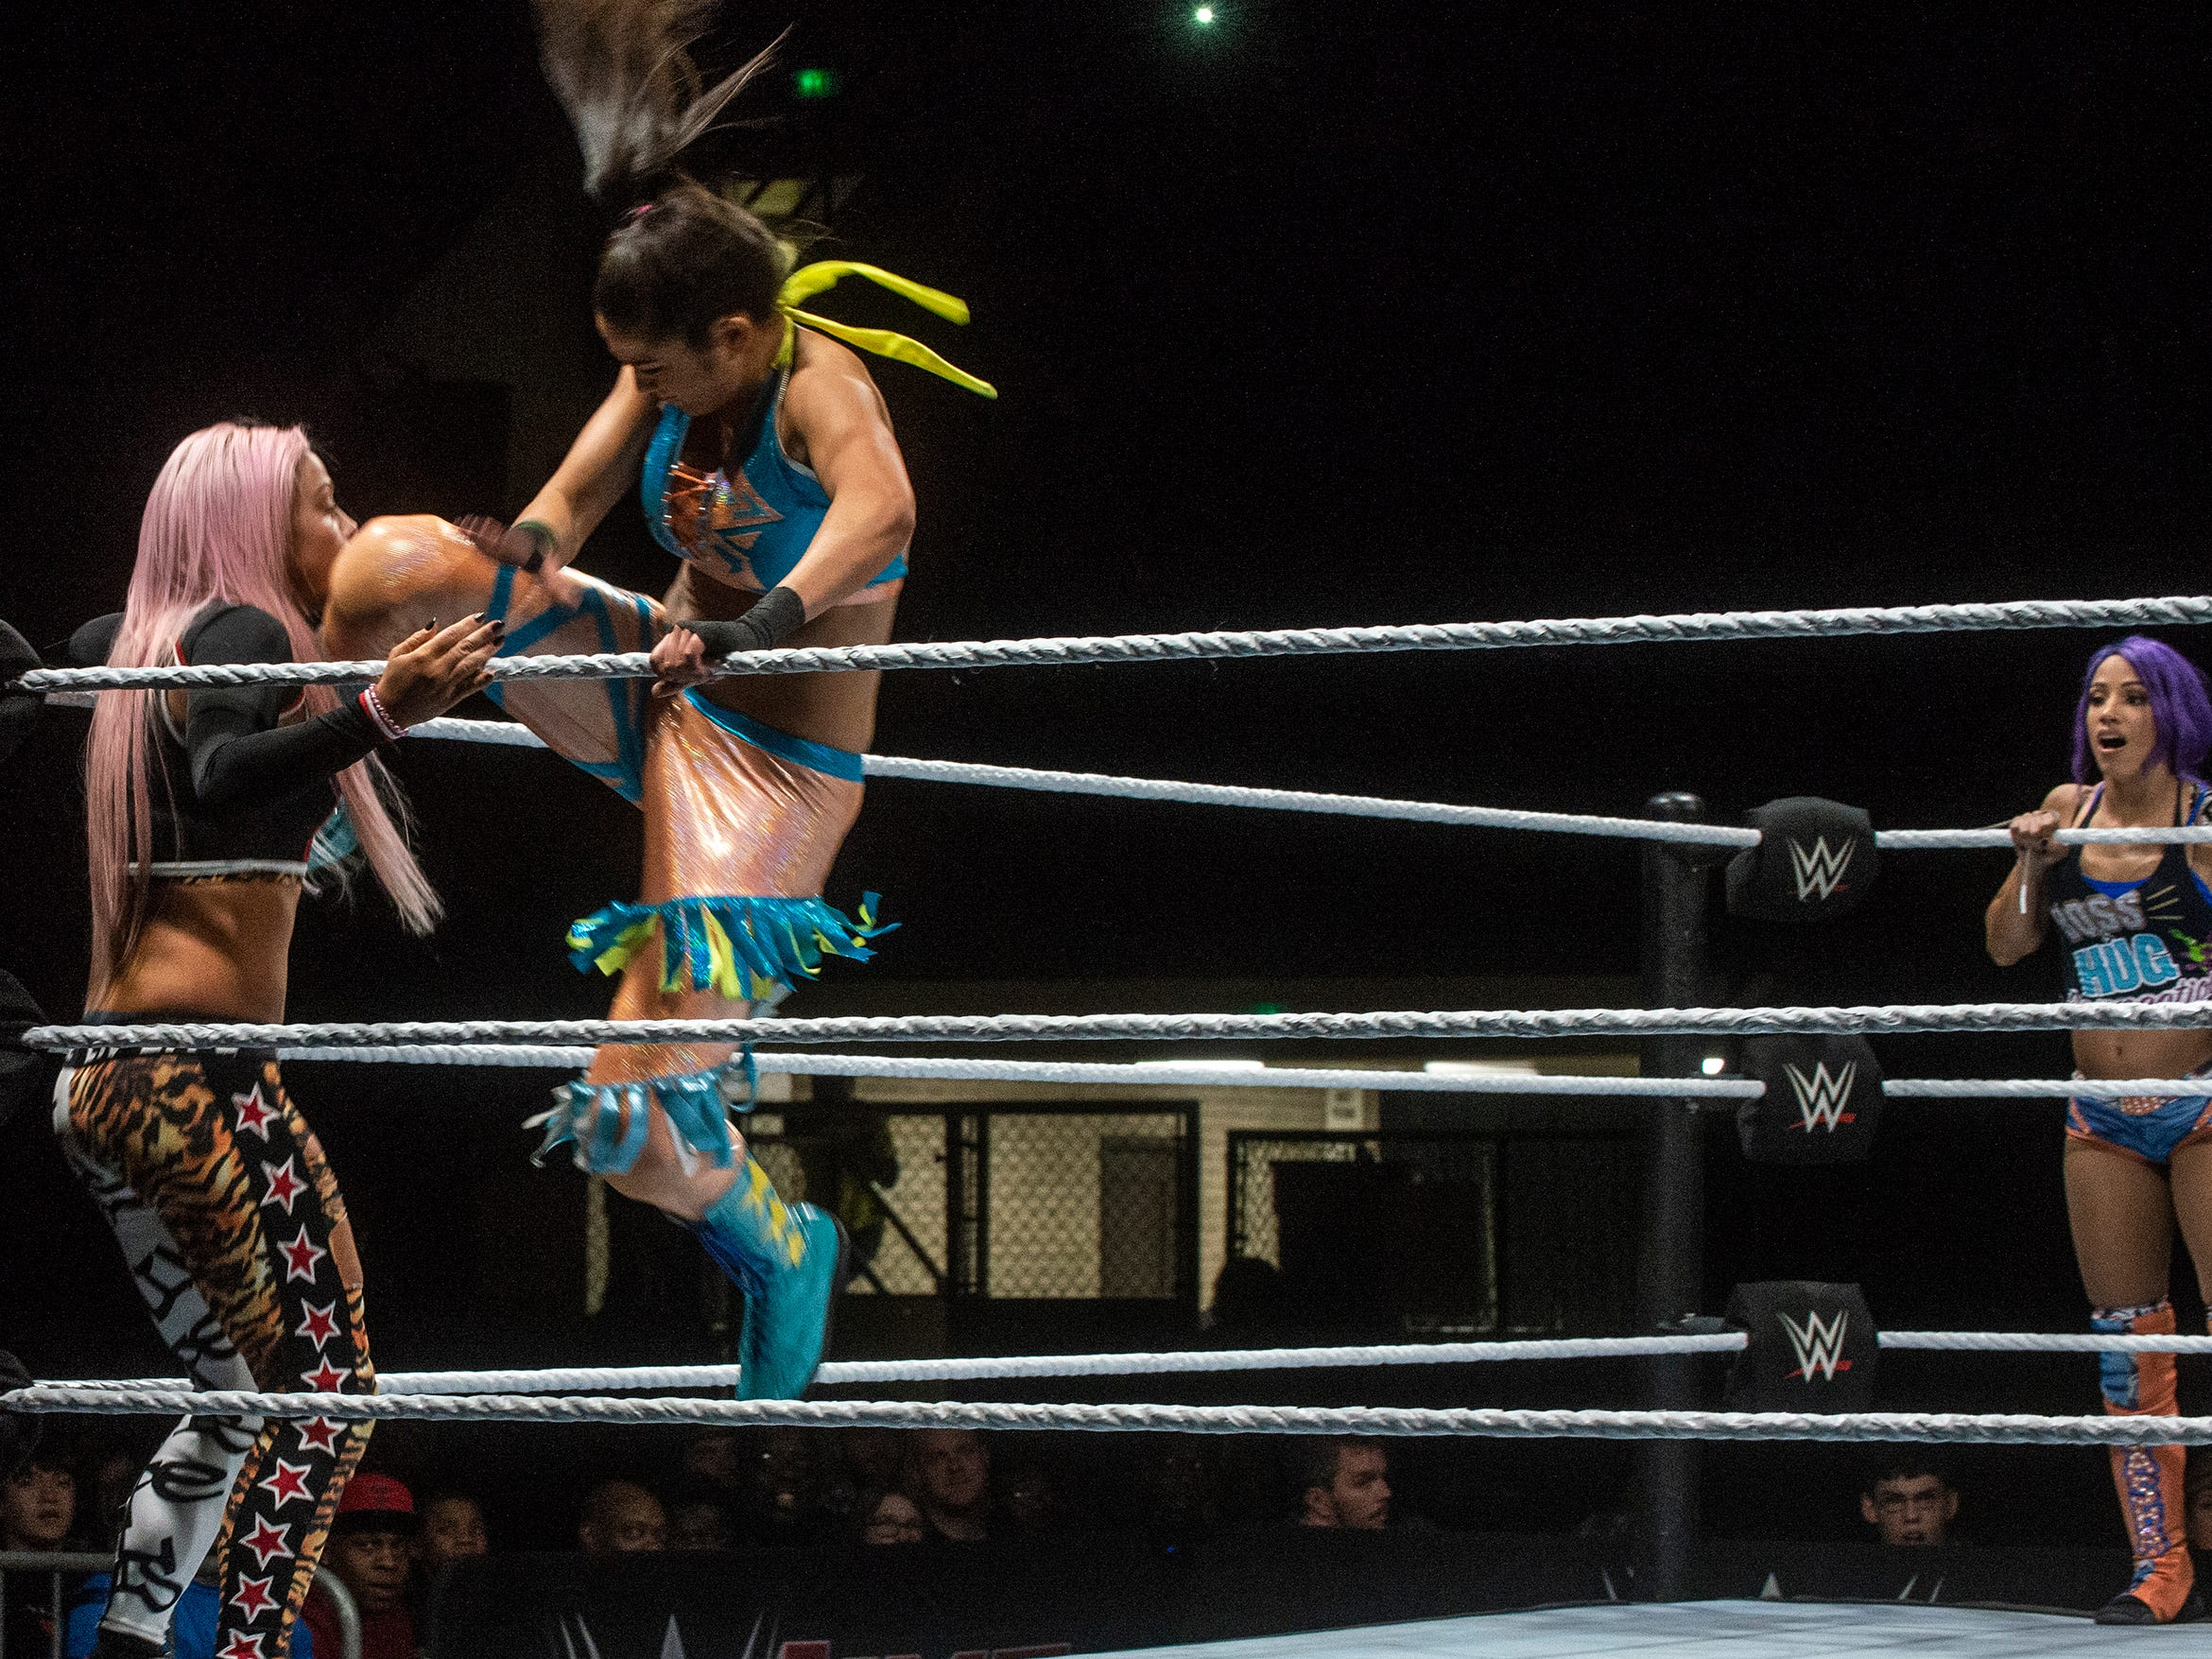 Bayley delivers a knee to the face. Sasha Banks and Bayley defend their tag team championship against the Riott Squad. WWE Live Road to Wrestlemania came to Garrett Coliseum in Montgomery on Sunday, Feb. 24, 2019.